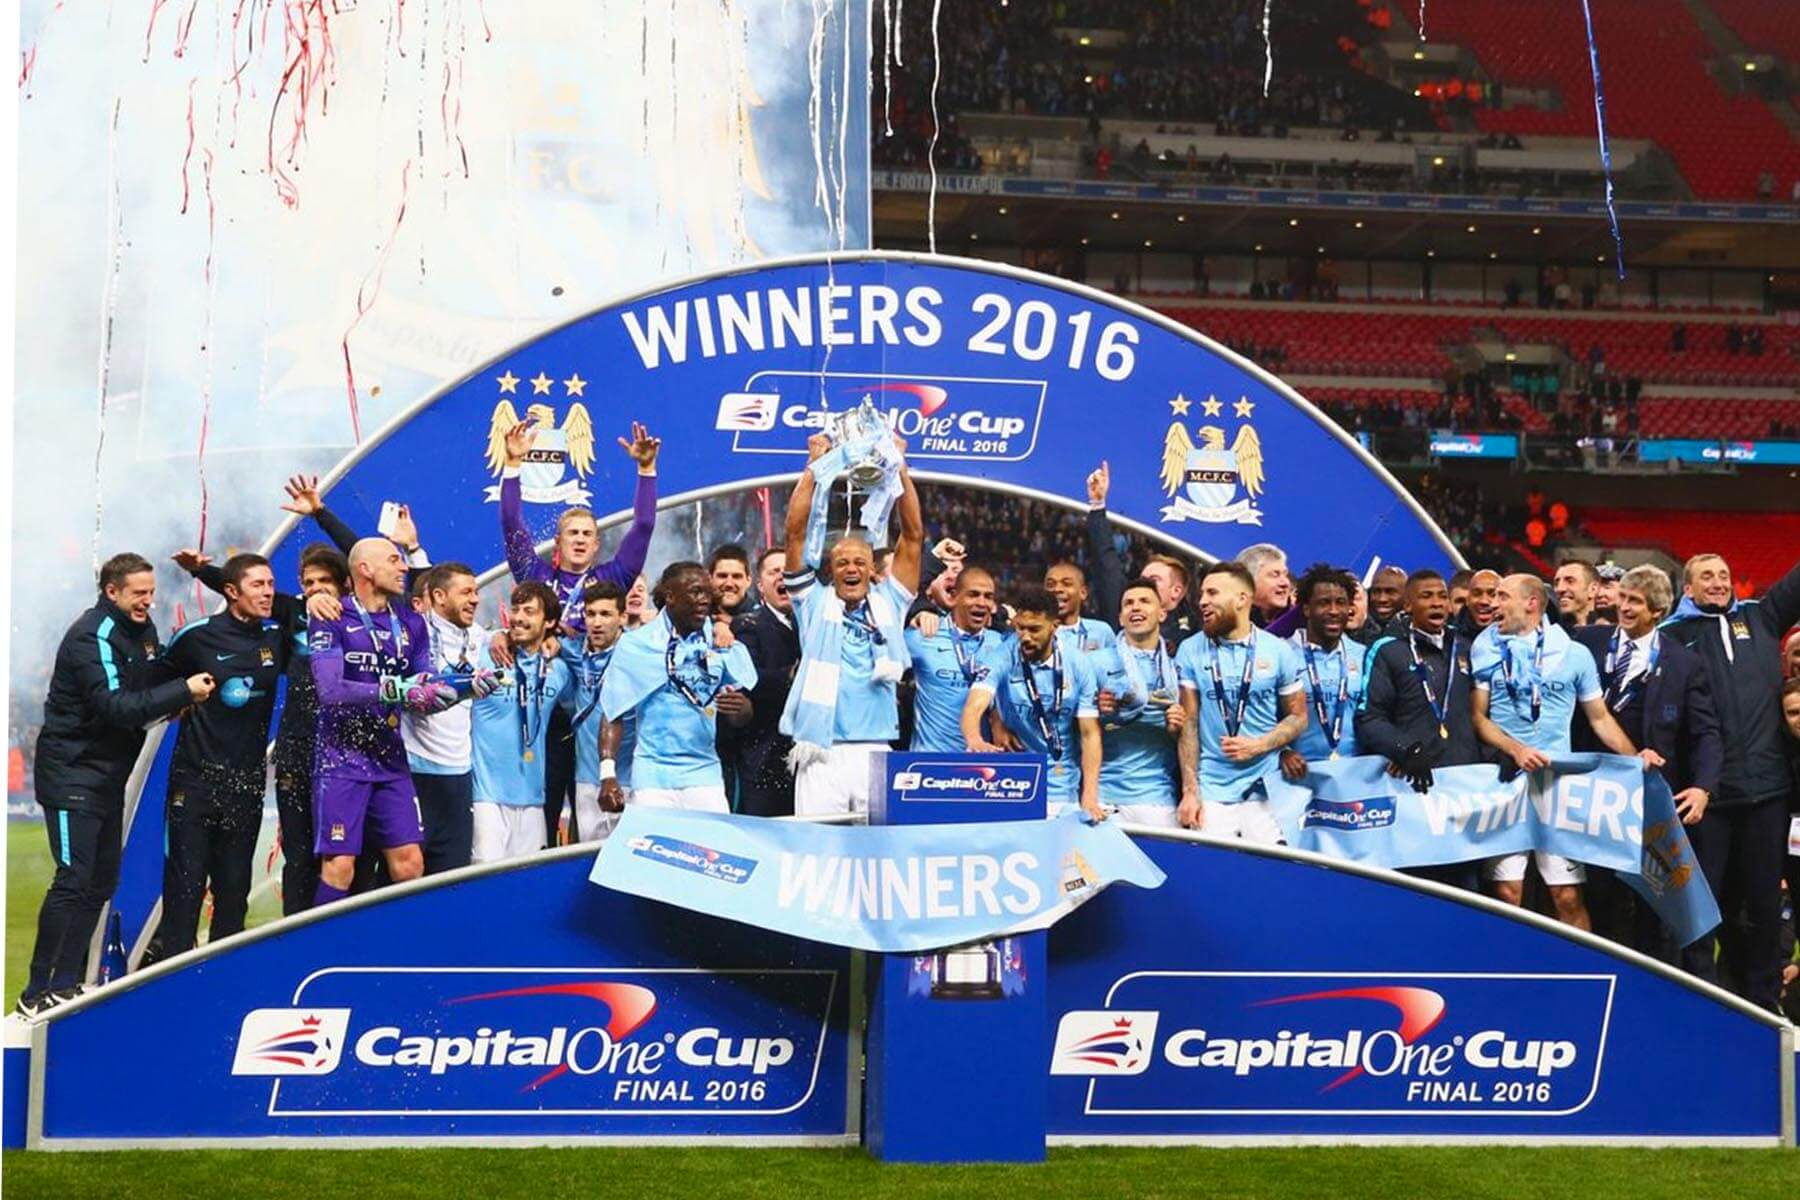 Enhanced Sports Presentation Winners Podium with Arched Back at Capital One Cup 2016